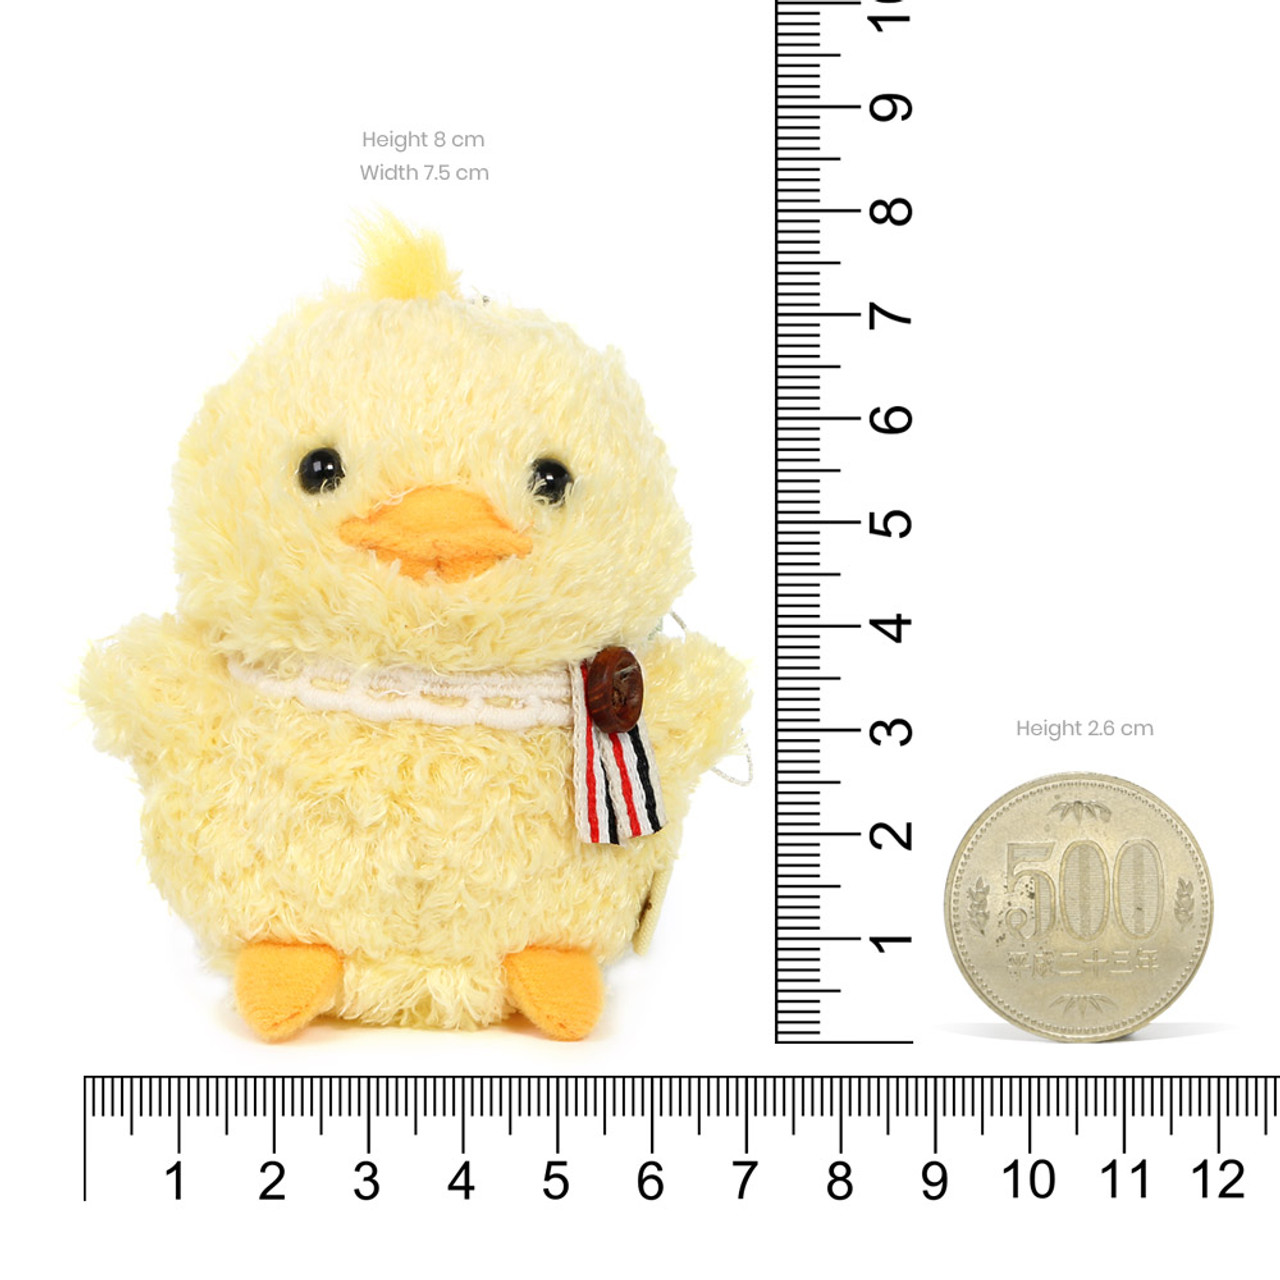 Naito Design Tot Series Chick Doll Charms - Chico ( Proportion )